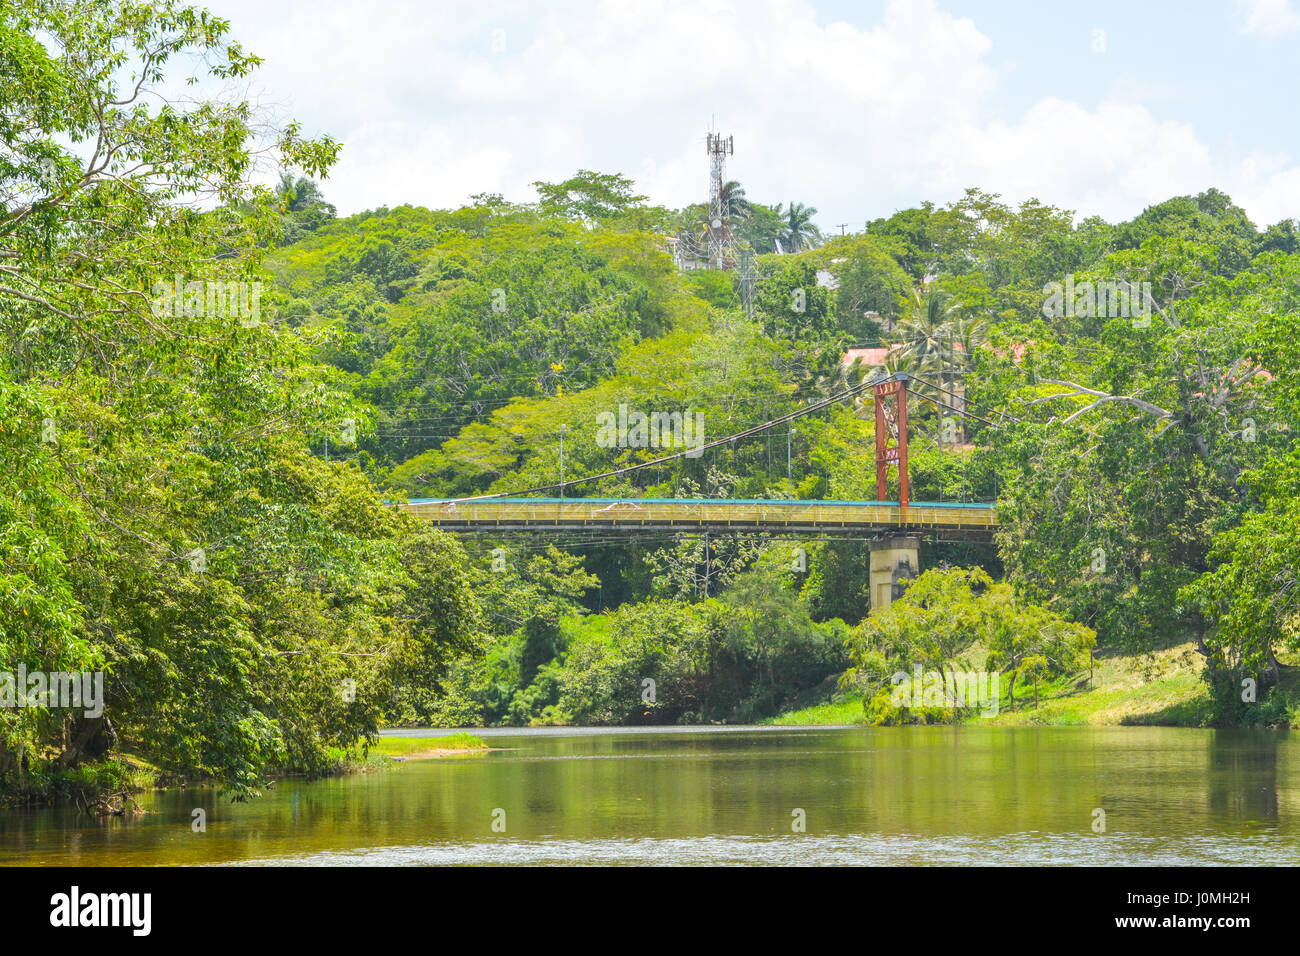 The iconic Hawksworth Suspension Bridge over Macal River in San Ignacio, Belize. - Stock Image